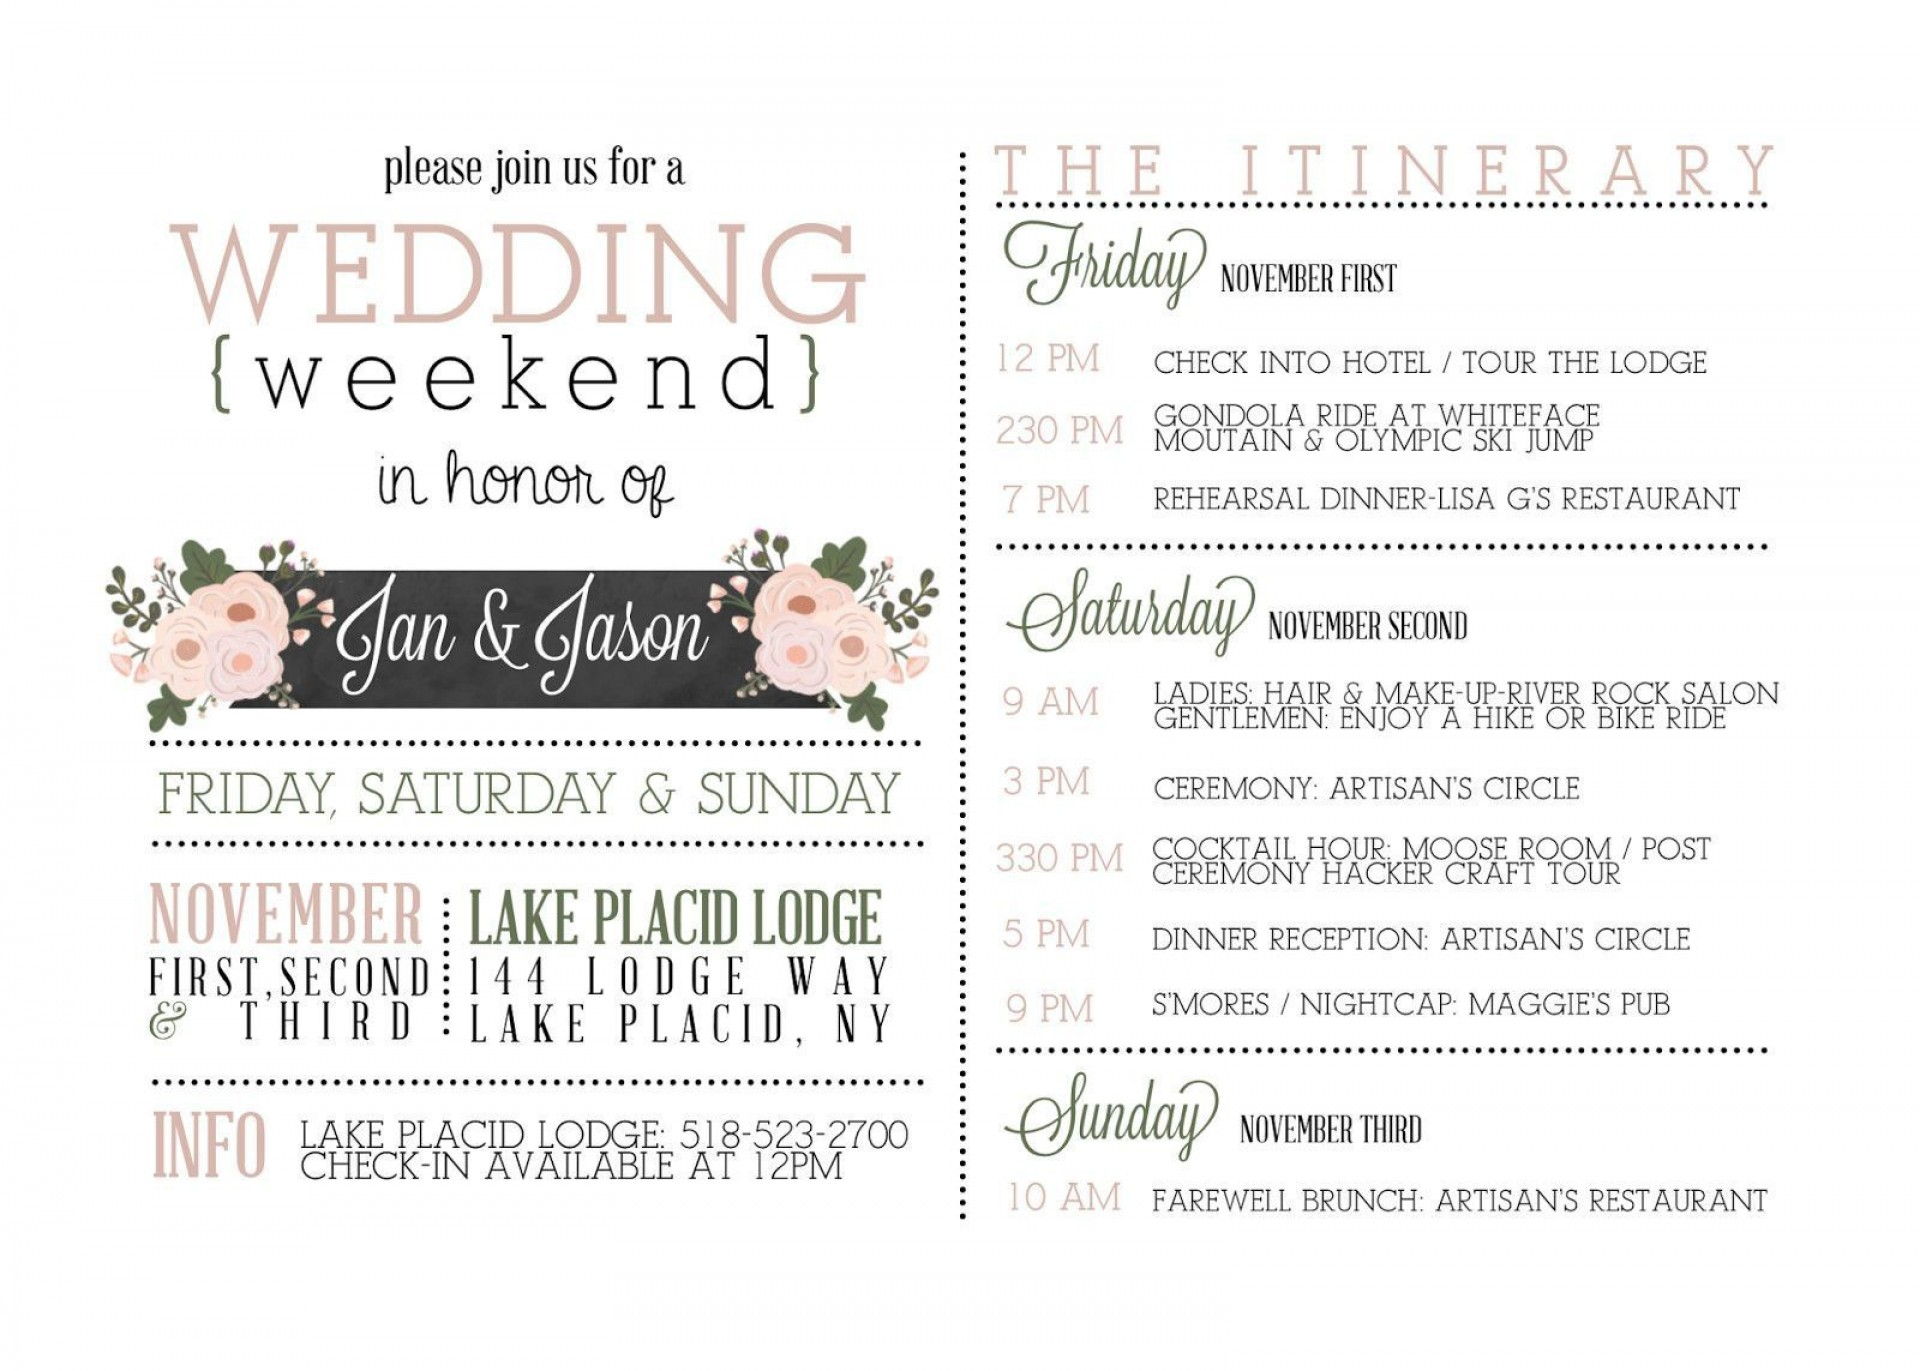 000 Formidable Wedding Timeline For Guest Template Free High Resolution  Download1920